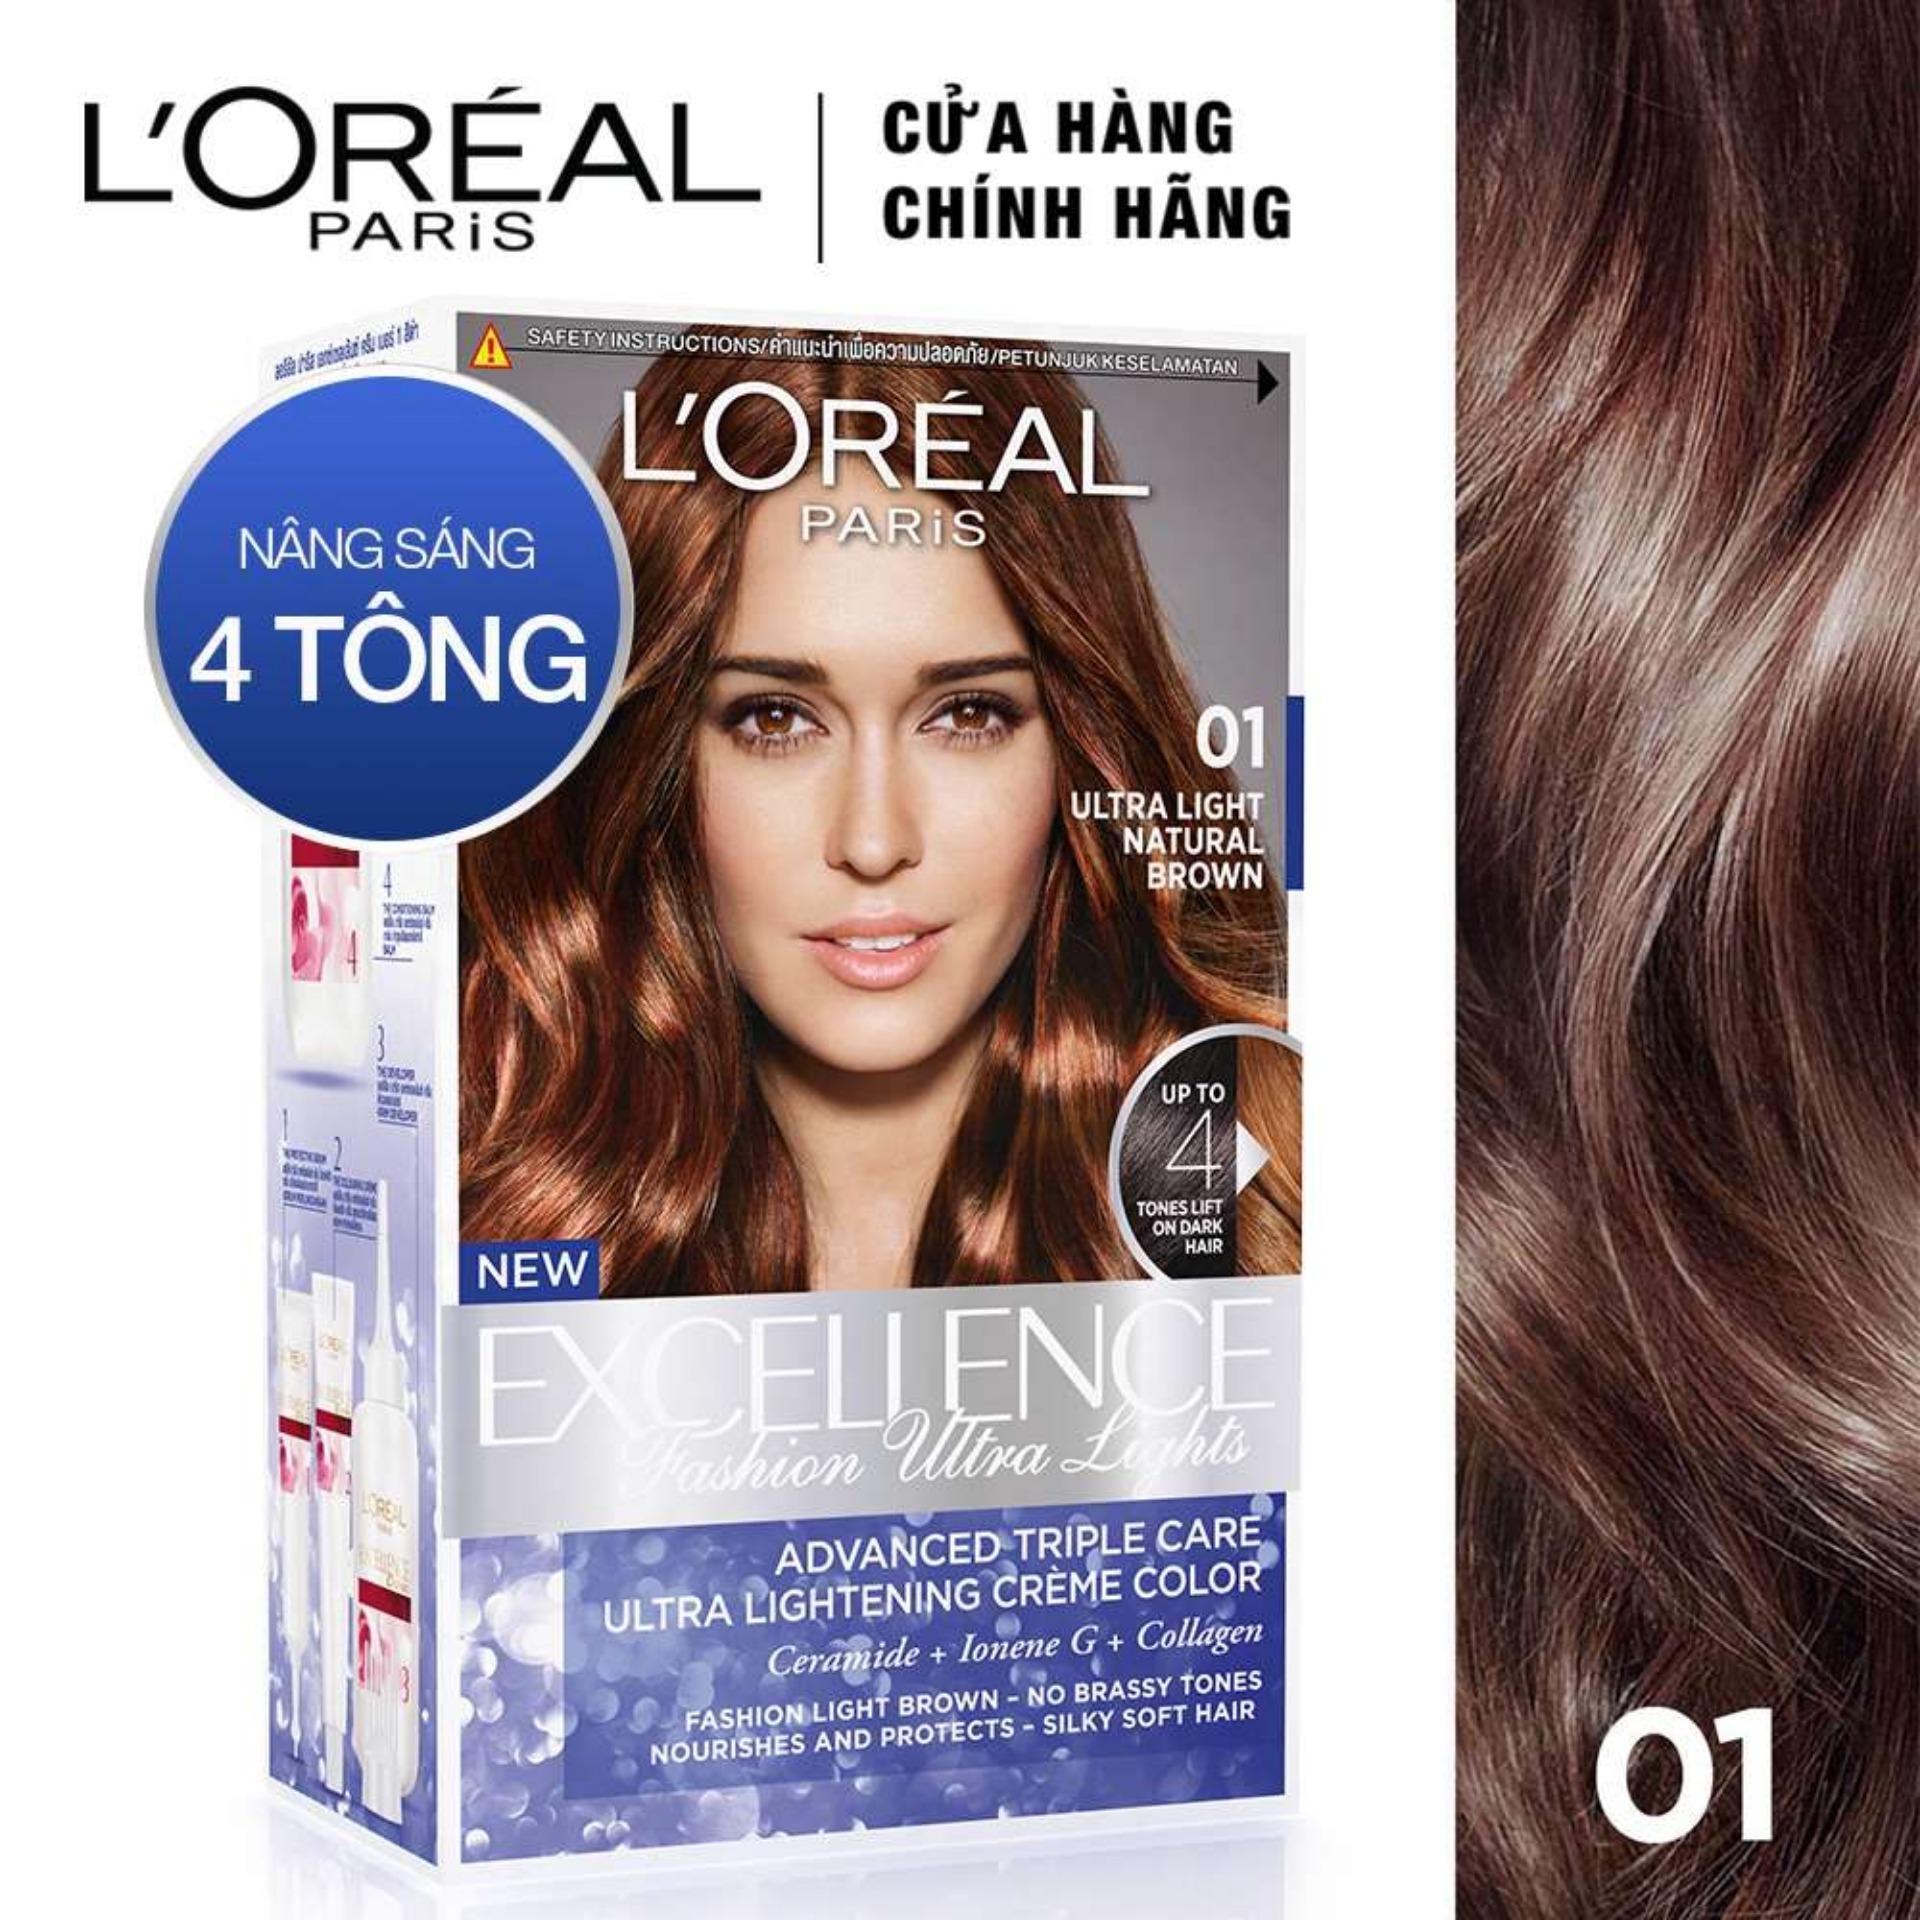 Kem nhuộm tóc nâng sáng L'Oreal Paris Excellence Fashion Ultra Light 172ml